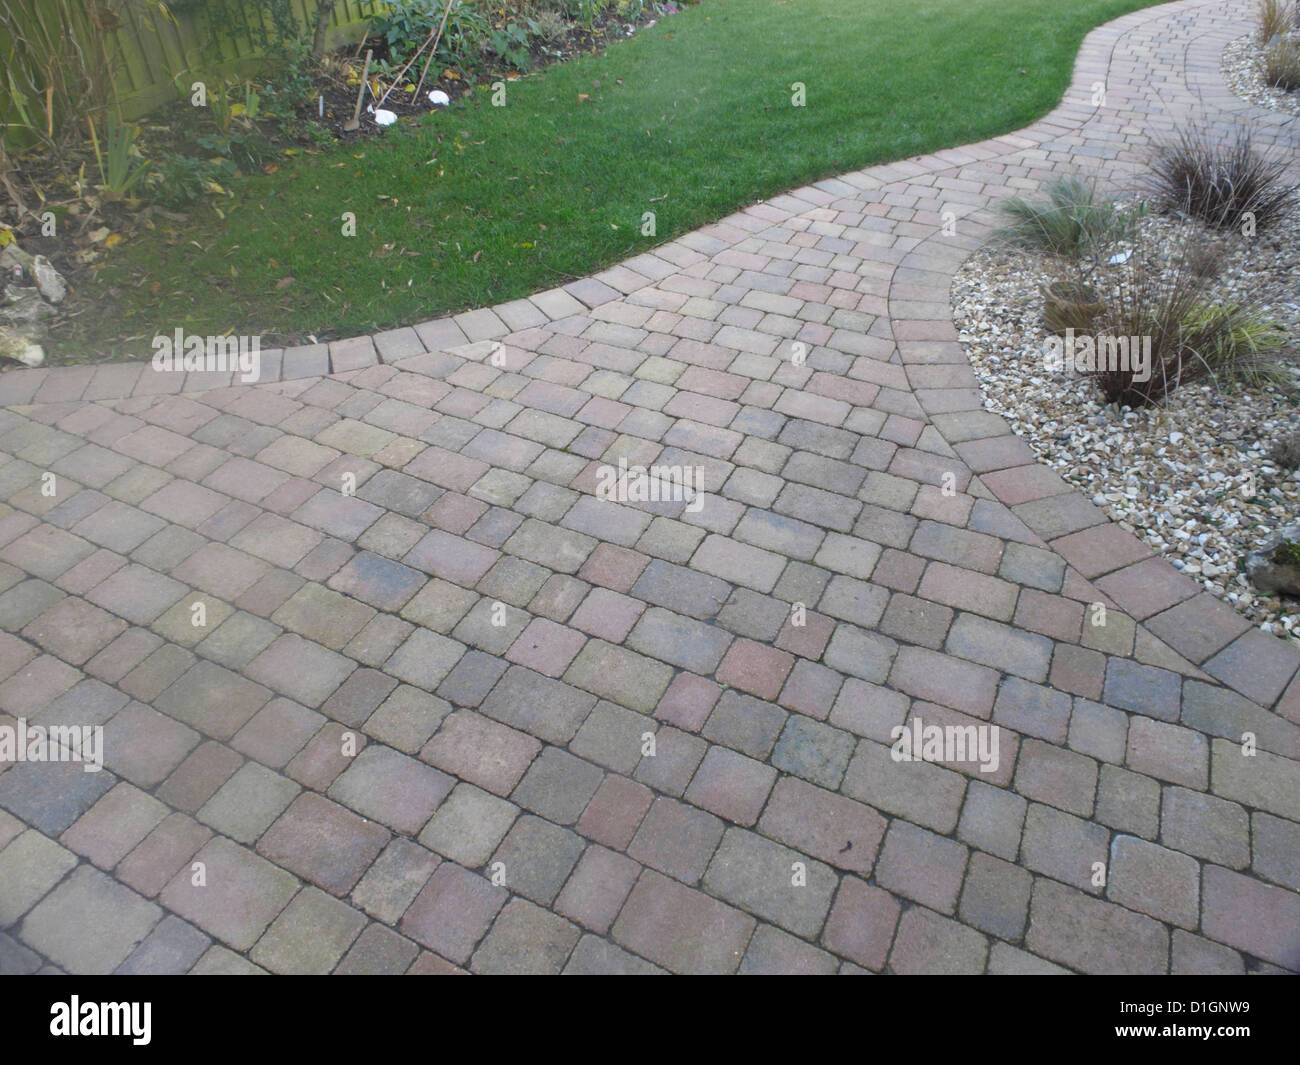 Rustic Red Brick Patio Block Paving In UK Garden With Porous Joints Acting  As Sustainable Drainage